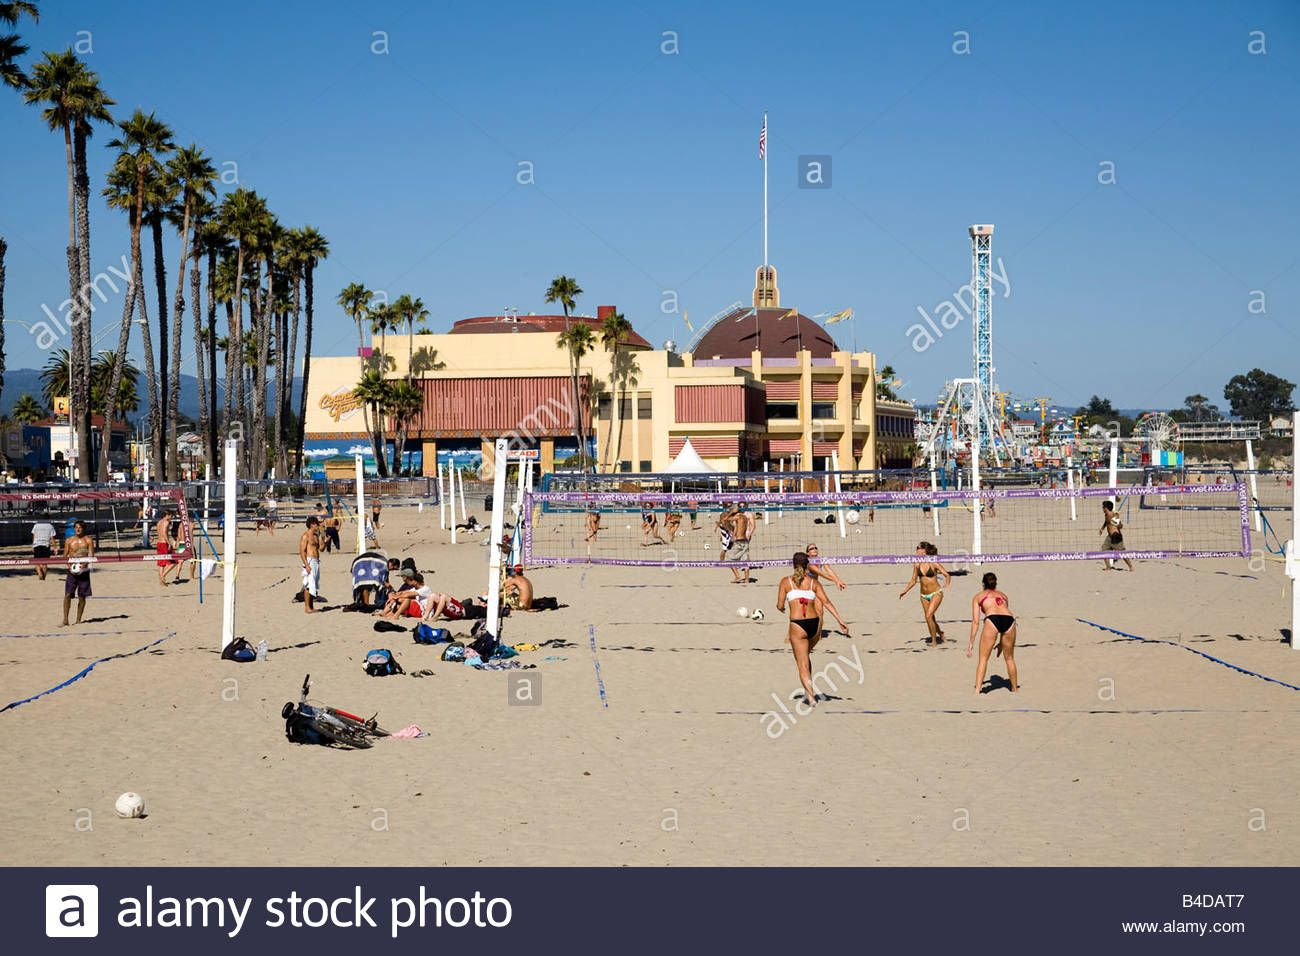 Stock Photo The Beach Volleyball Courts At The Main Beach Near The Santa Cruz Beach Boardwalk Ar Beach Volleyball Court Santa Cruz Santa Cruz Beach Boardwalk